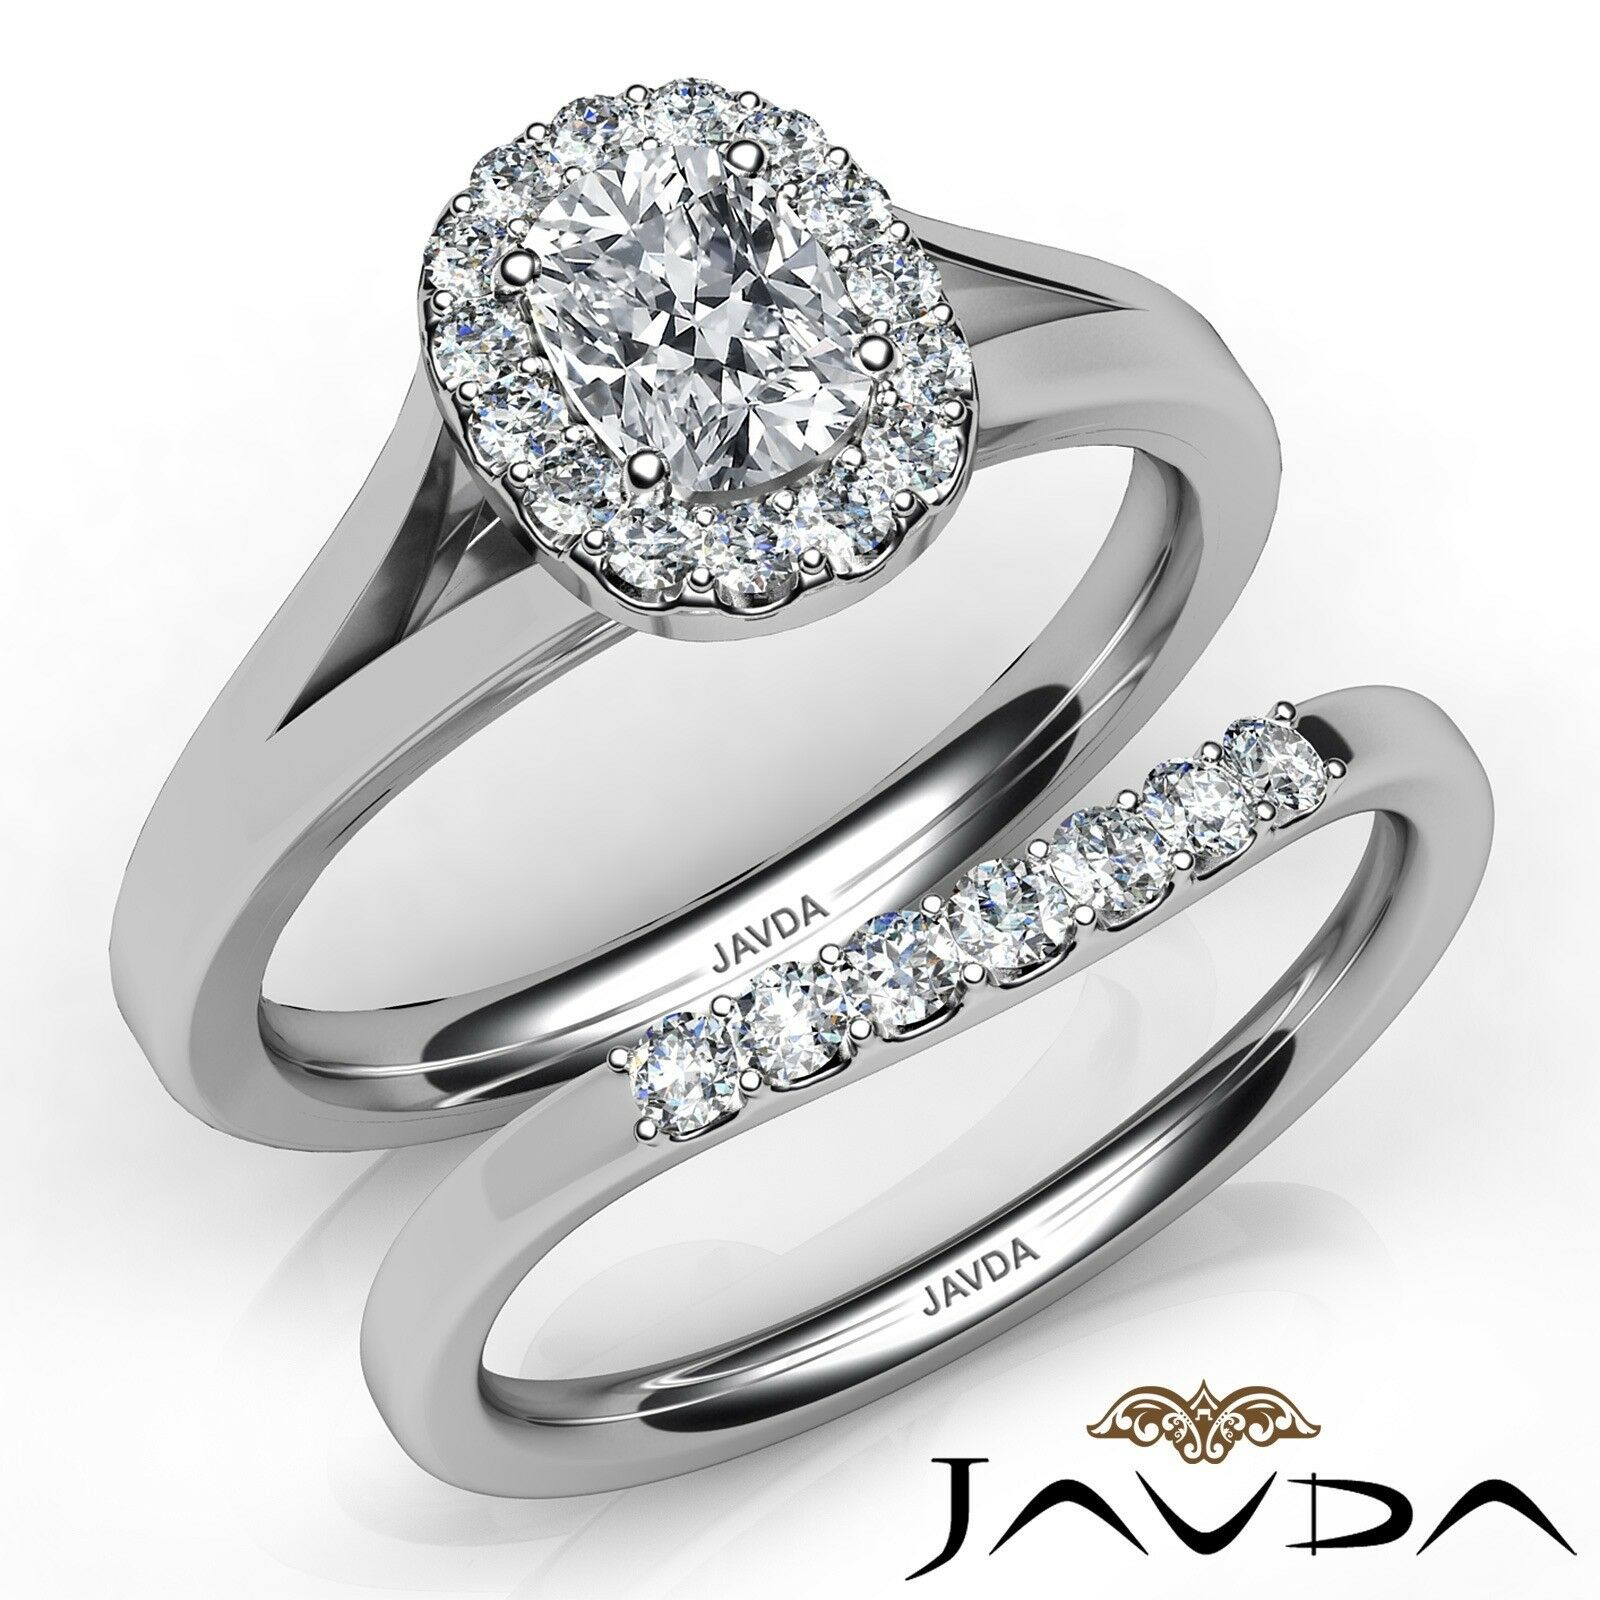 1.03ctw Cathedral Style Bridal Cushion Diamond Engagement Ring GIA G-VVS1 W Gold